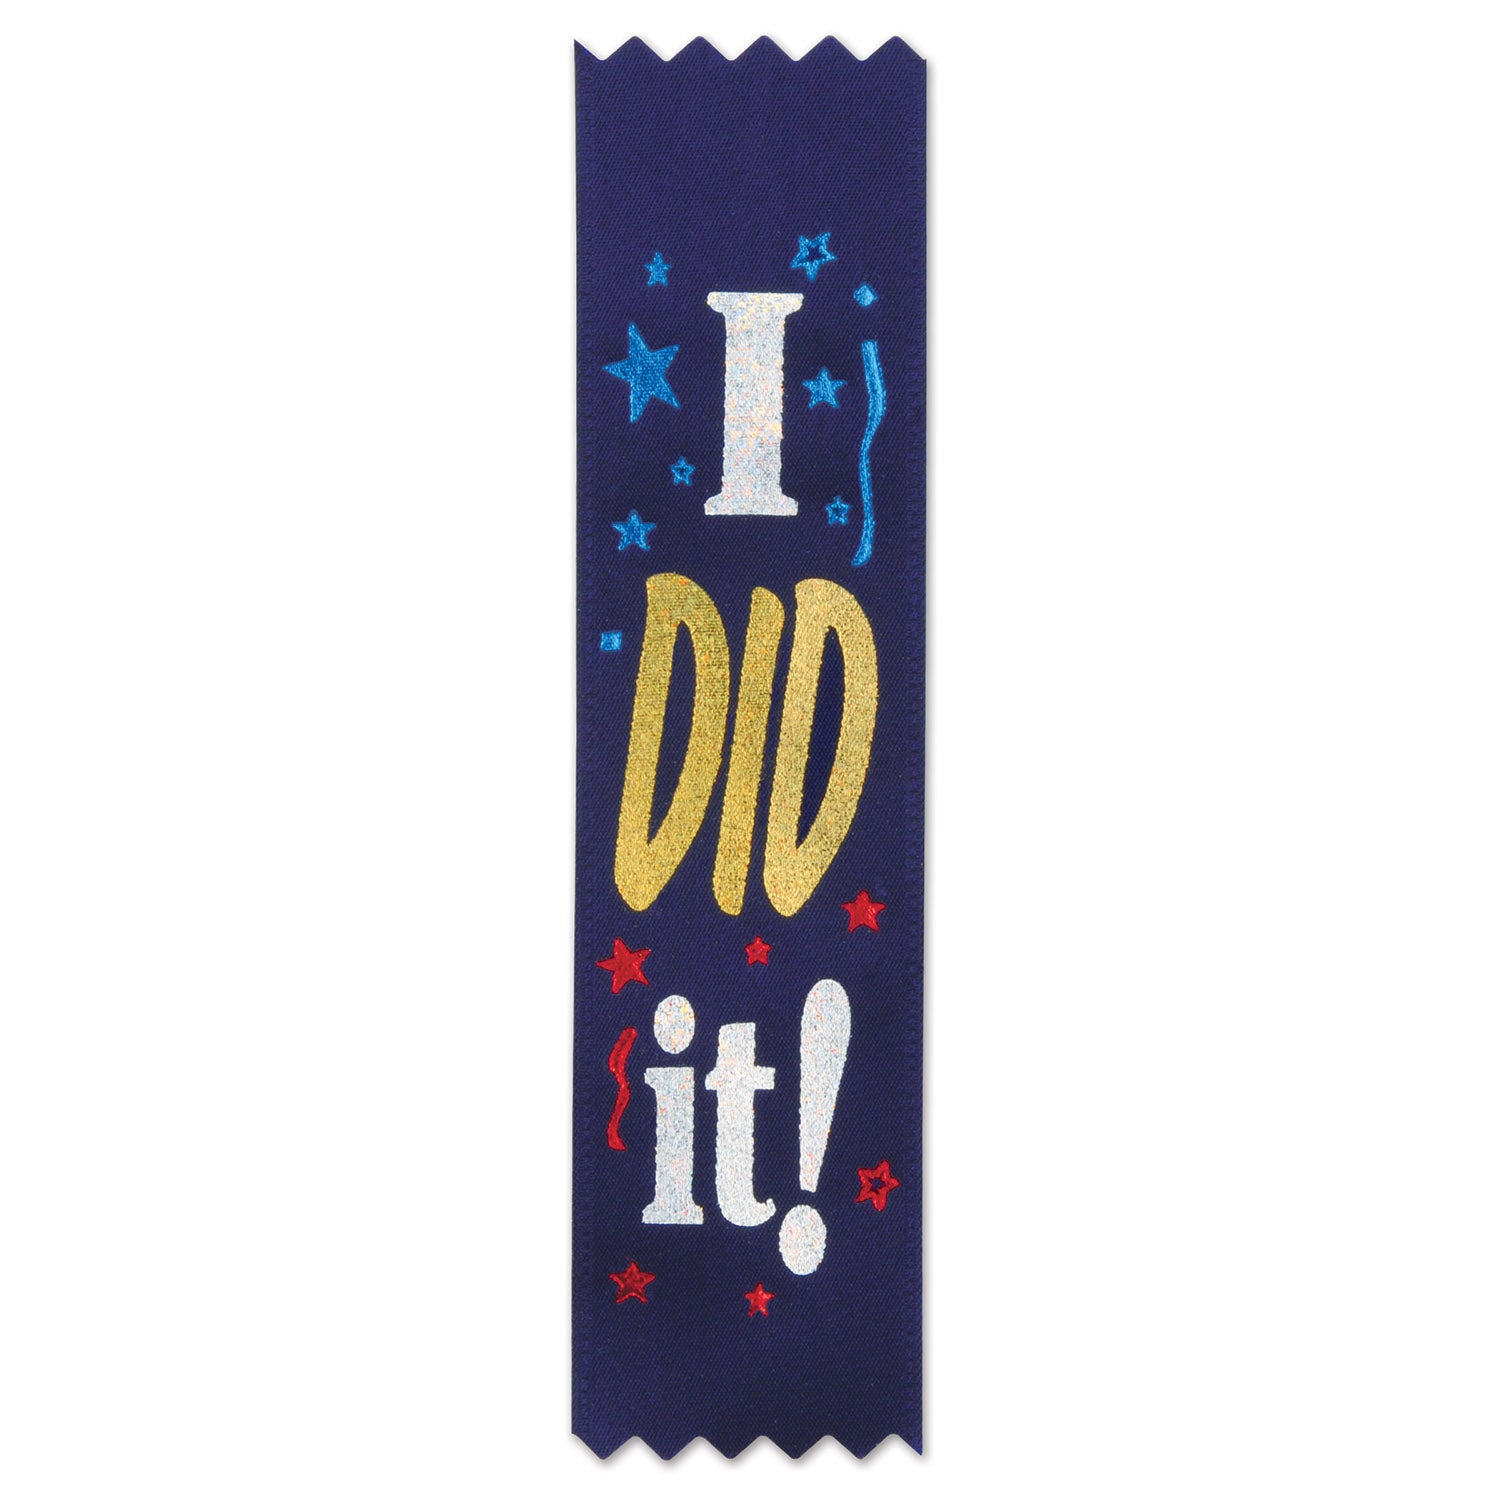 I Did It! Value Pack Ribbons (10/Pkg) by Beistle - School Awards and Supplies Decorations